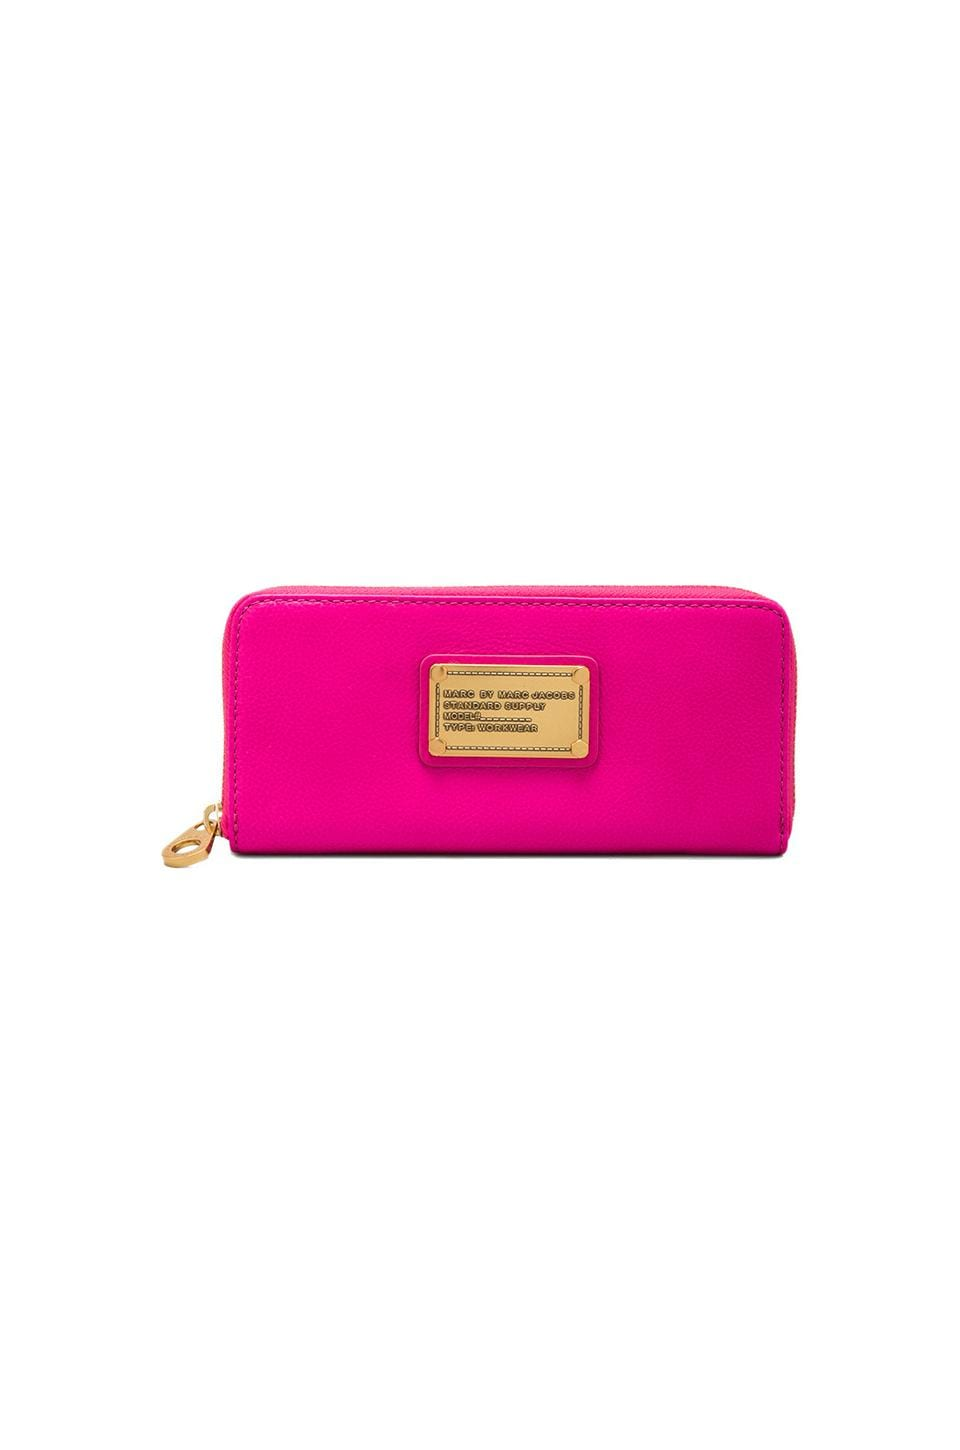 Marc by Marc Jacobs Classic Q Slim Zip Around in Pop Pink